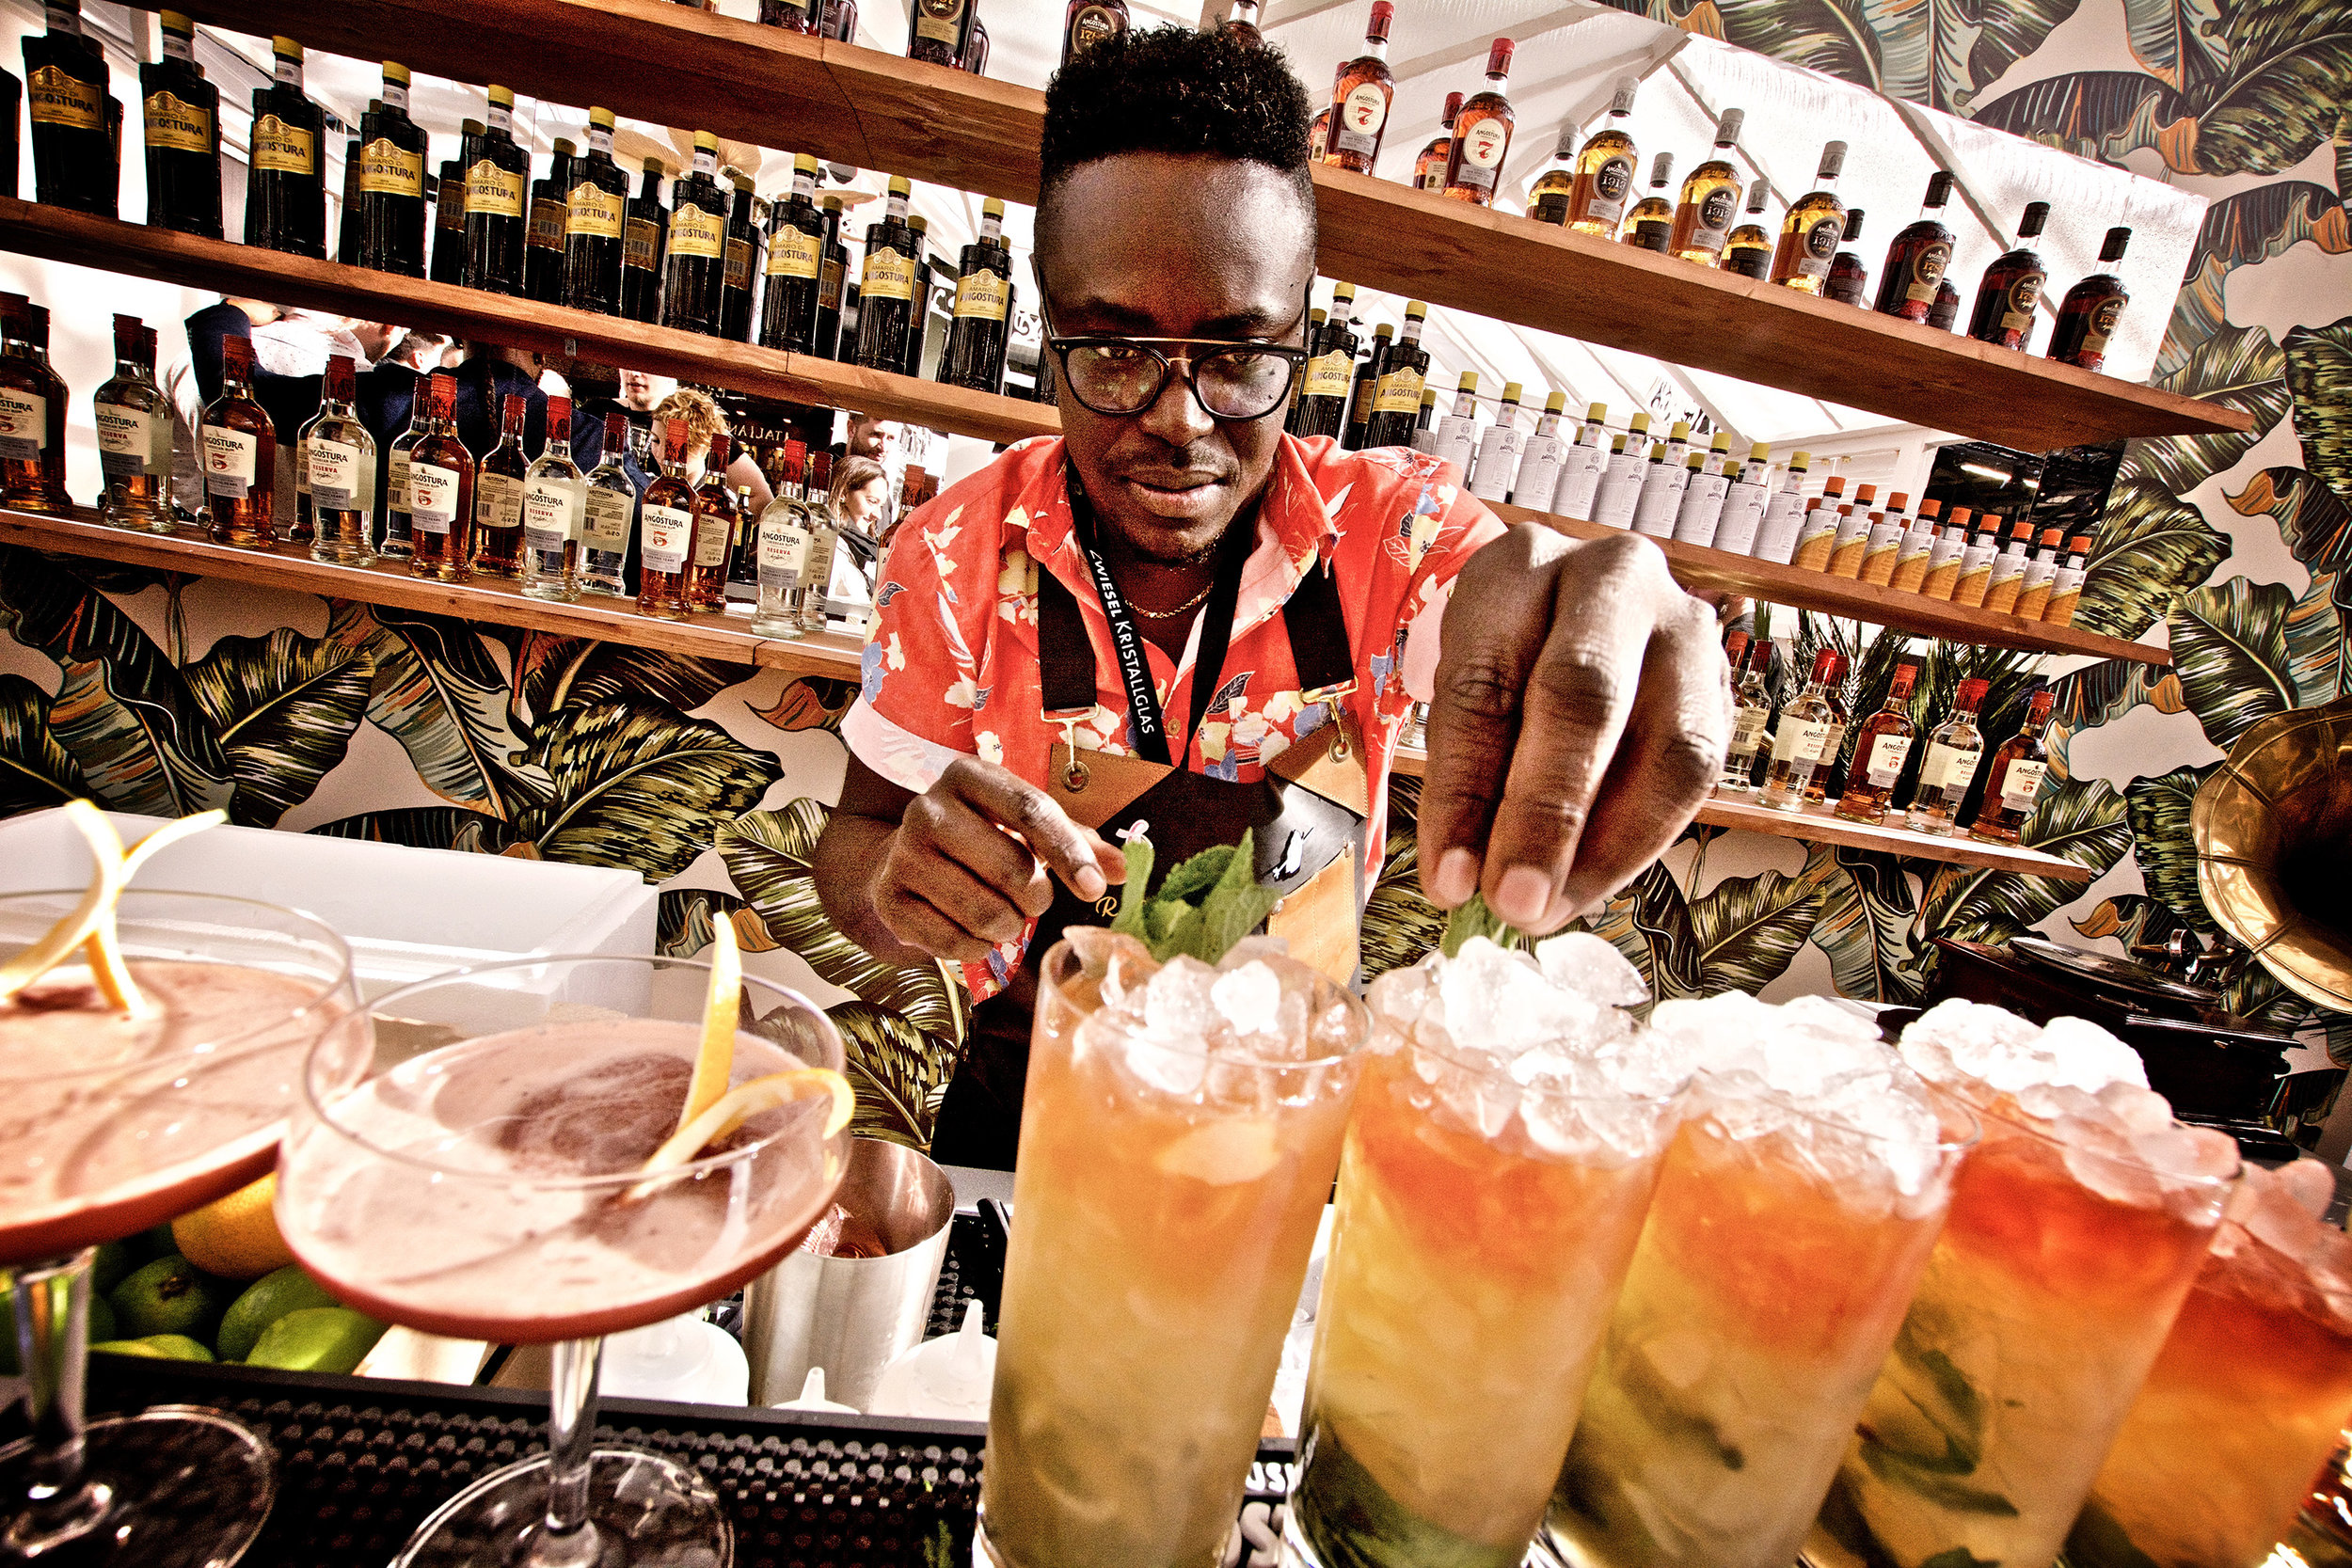 Queens Park Swizzles for all at the Angostura stand! Photo by Gili Shani for BCB